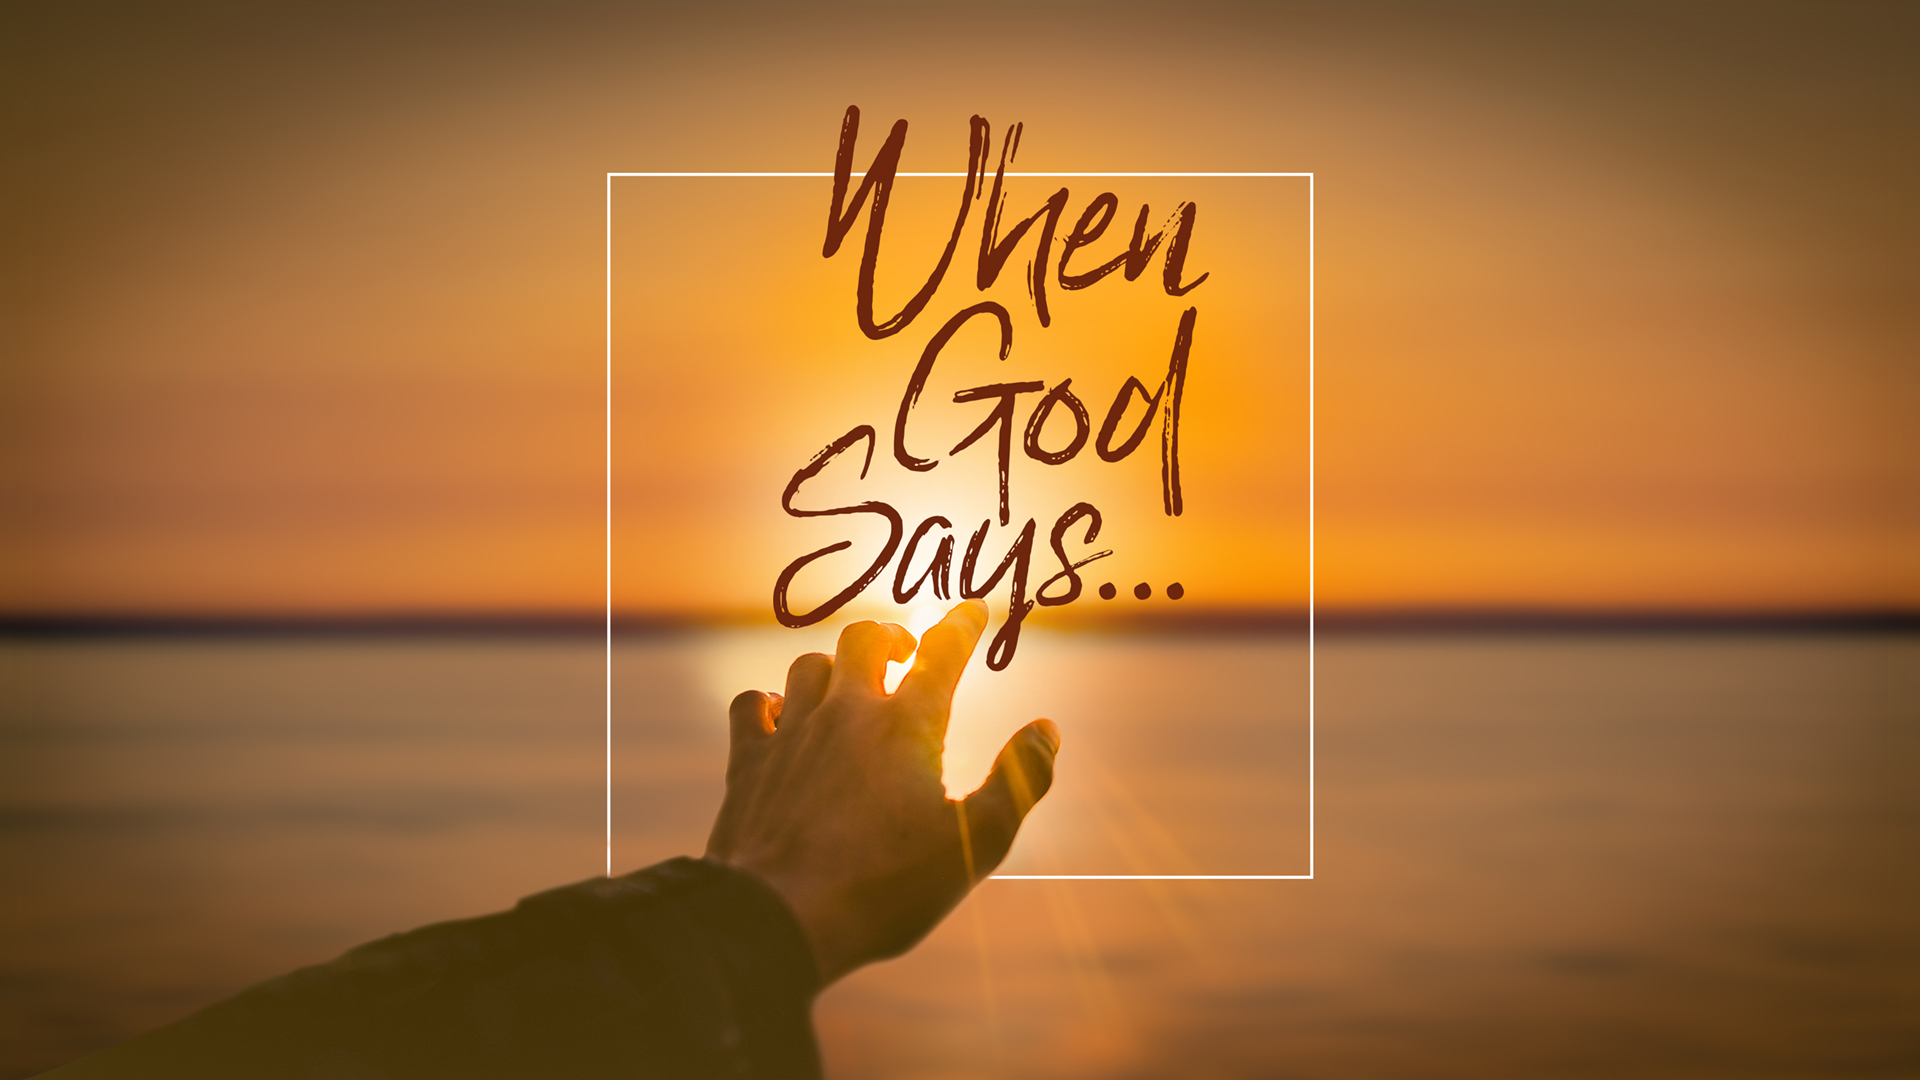 When God Says...